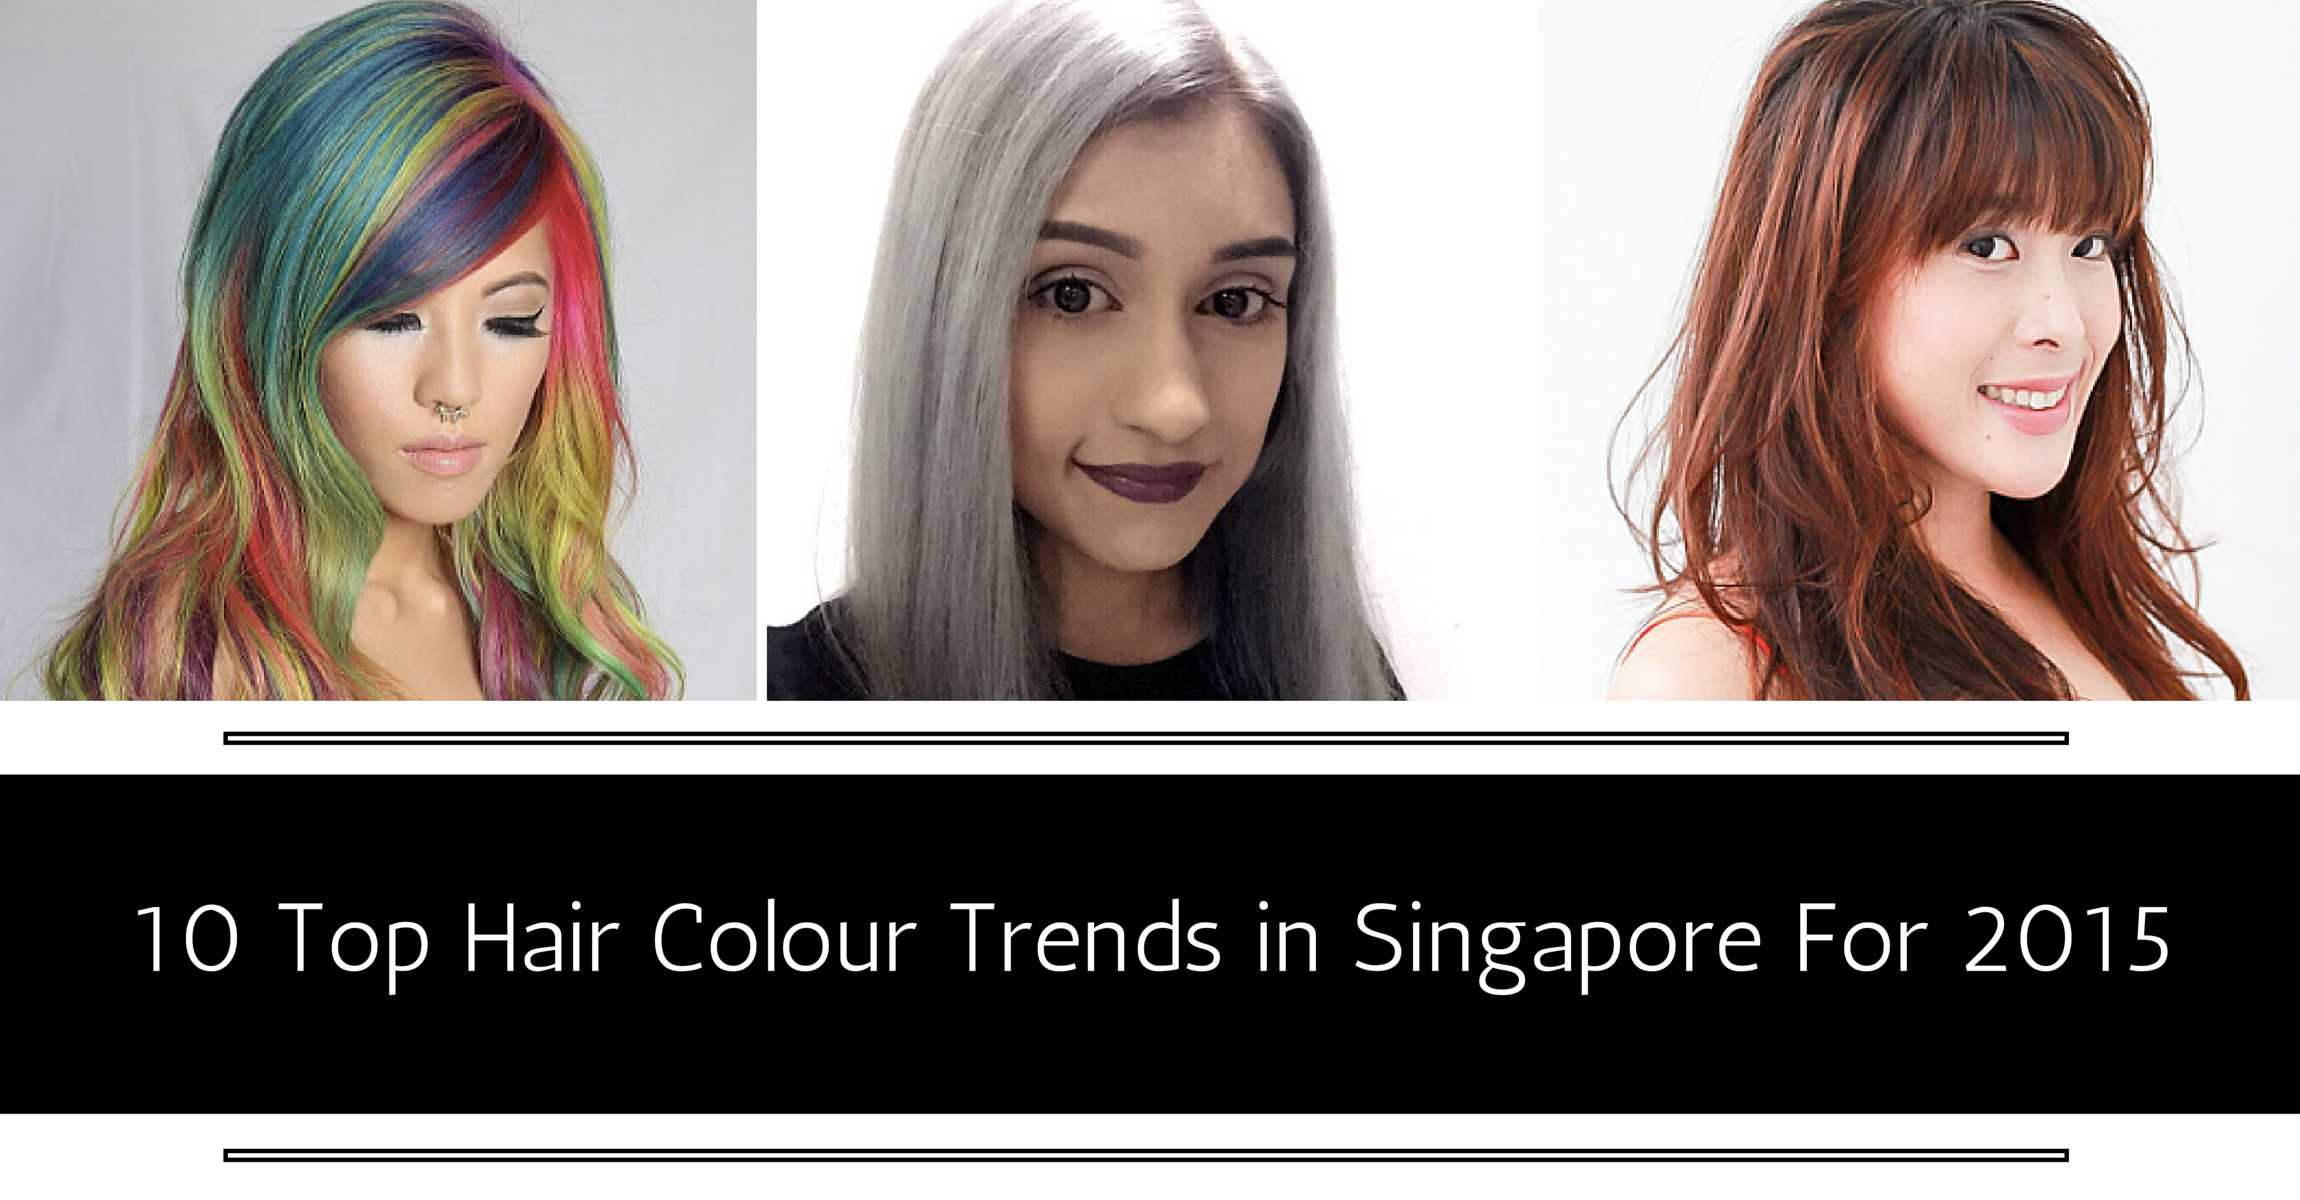 10 Top Hair Colour Trends In Singapore For 2015